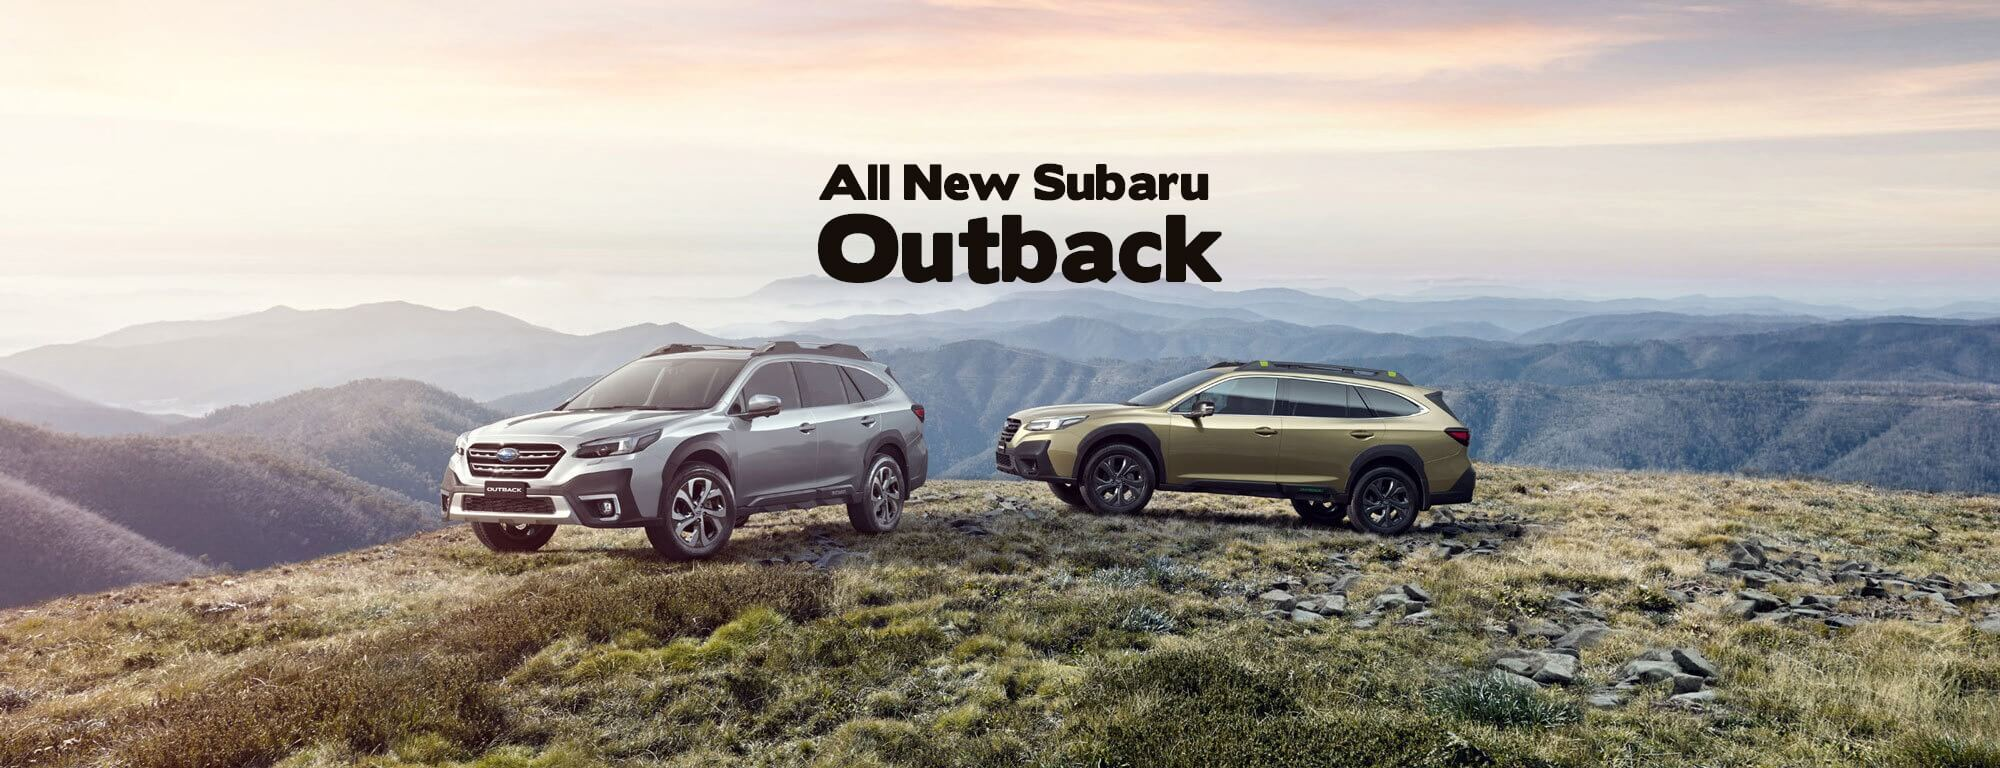 subaru service, All New Outback